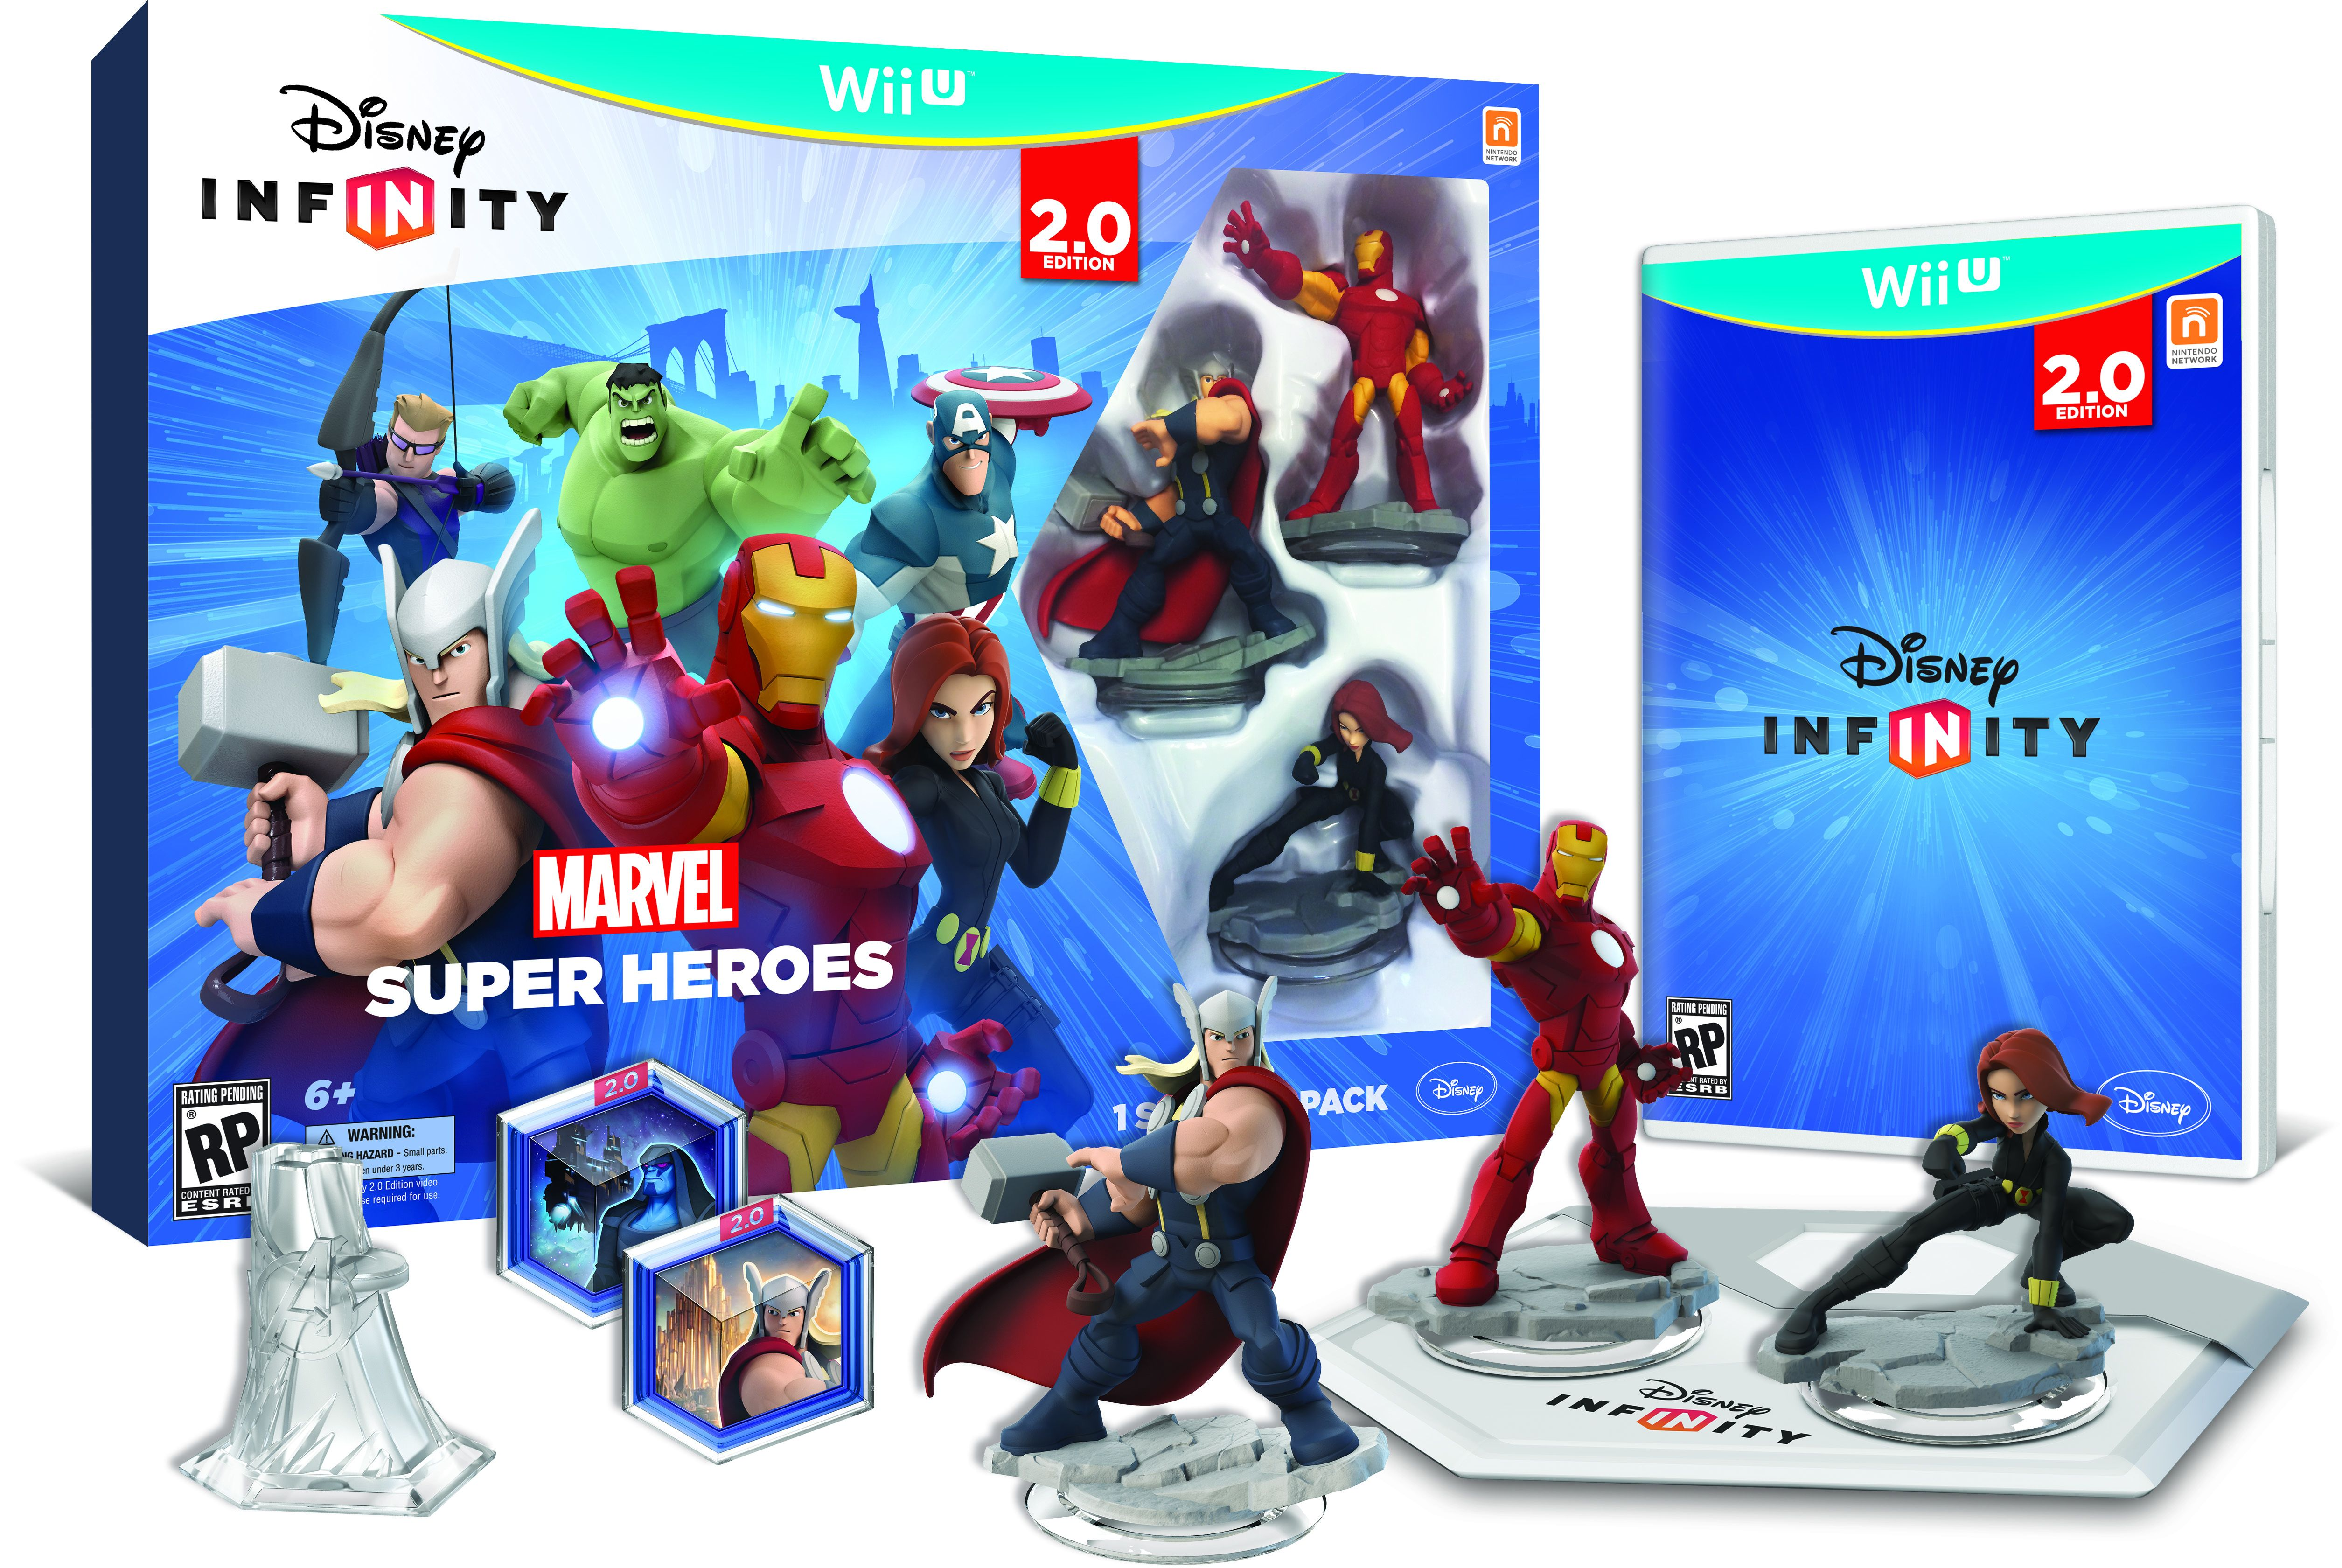 Disney Infinity 2.0: Review